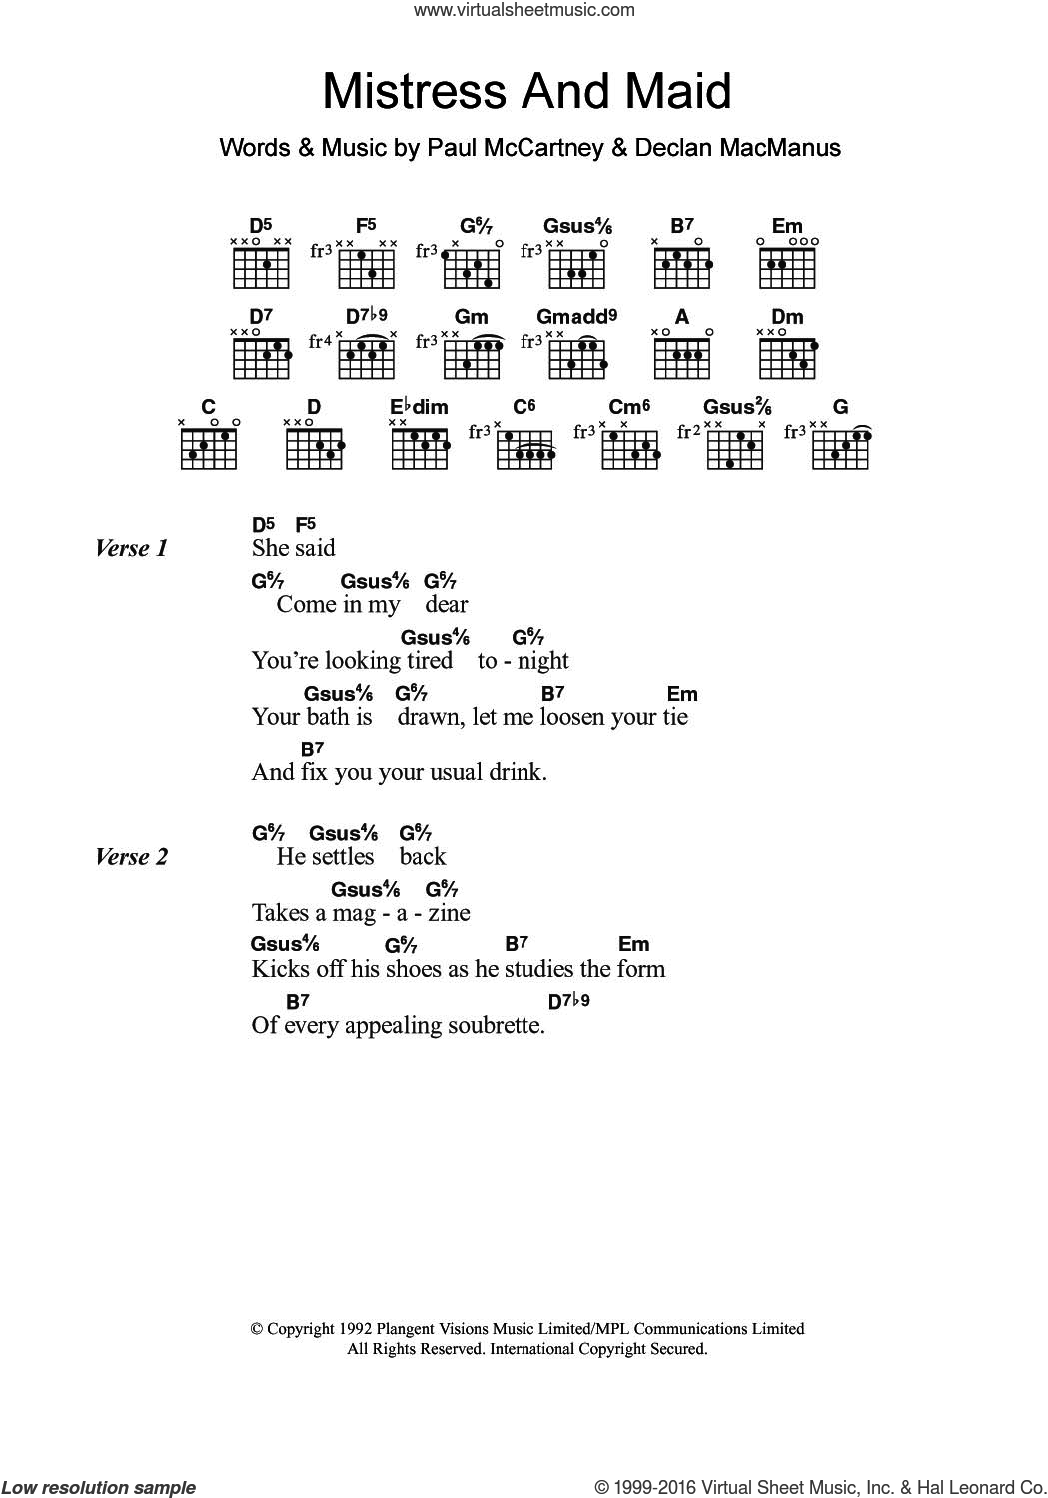 Mistress And Maid sheet music for guitar (chords) by Paul McCartney and Declan Macmanus, intermediate skill level